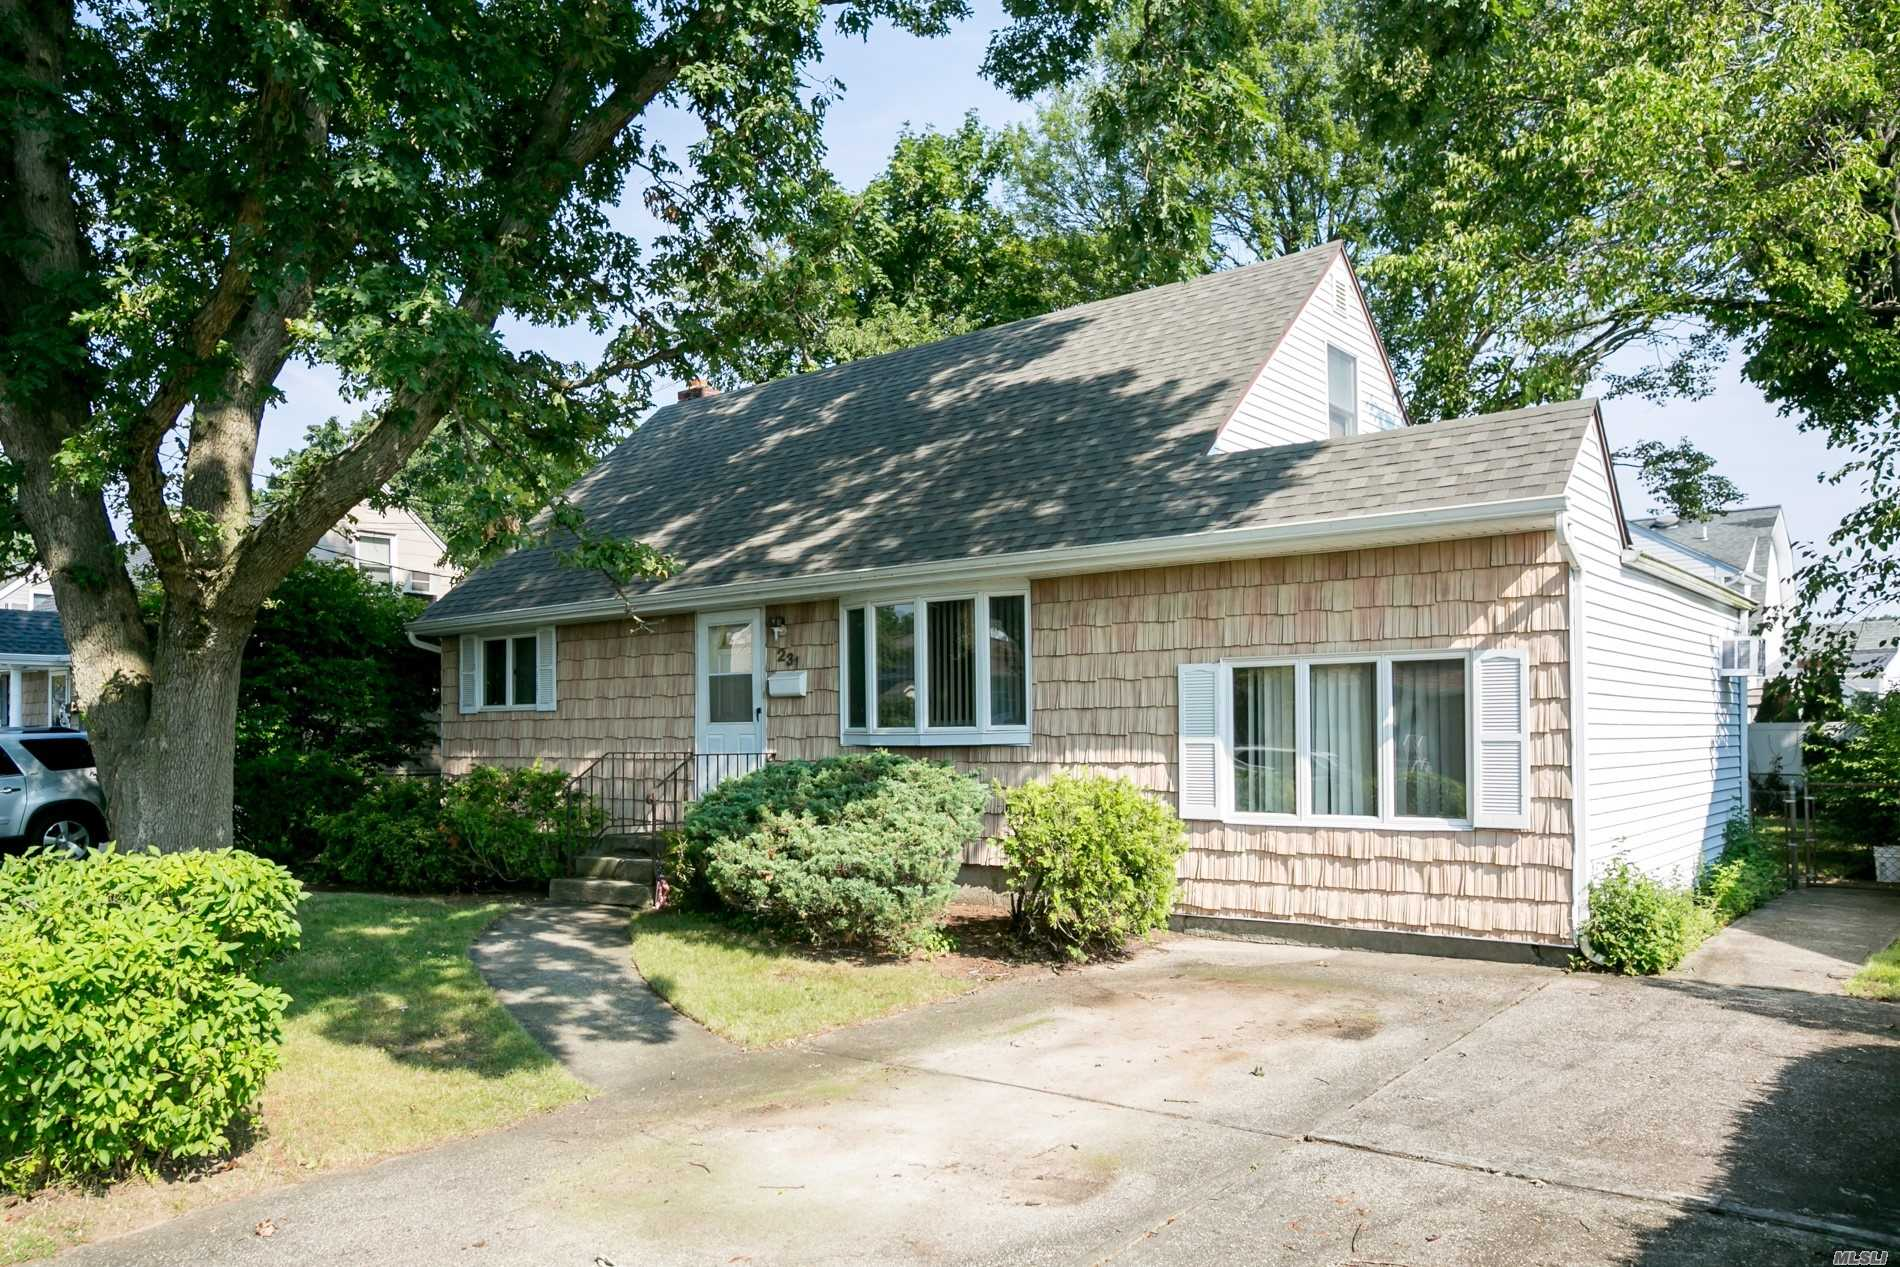 Nice Clean 4 Br, 1 Bath Cape In Plainedge Sd, Mid-Block Location, New Roof, 150 Amps, Andersen Windows, New Carpet, Full Bsmt